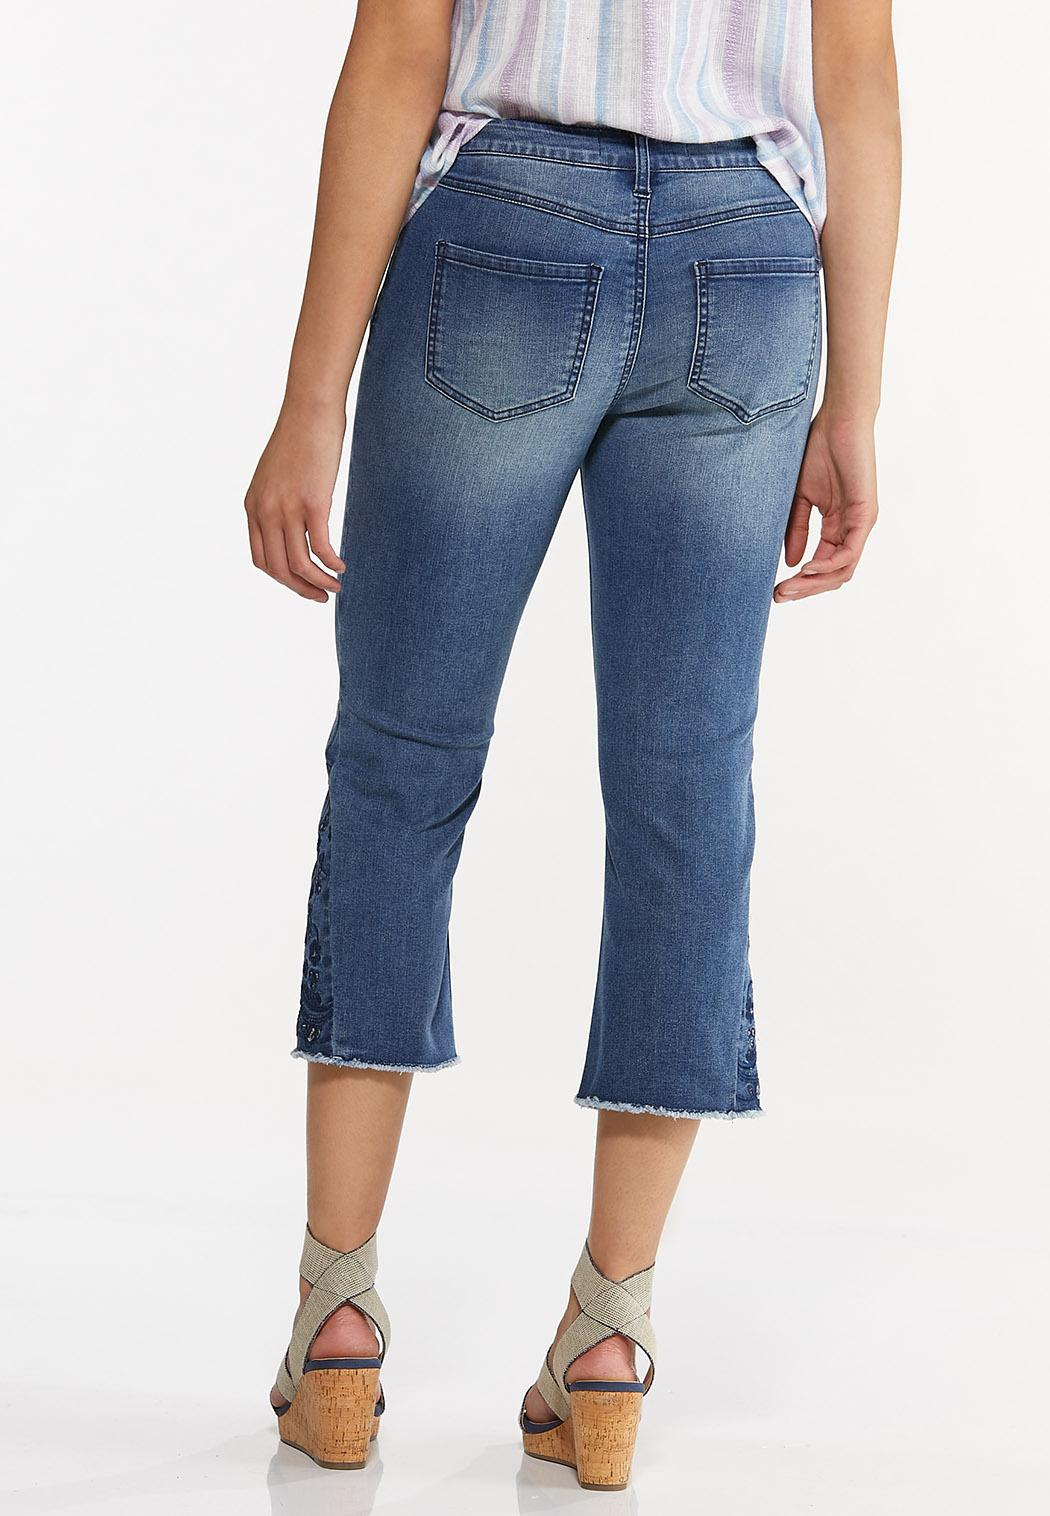 Cropped Embroidered Flare Jeans (Item #44584299)